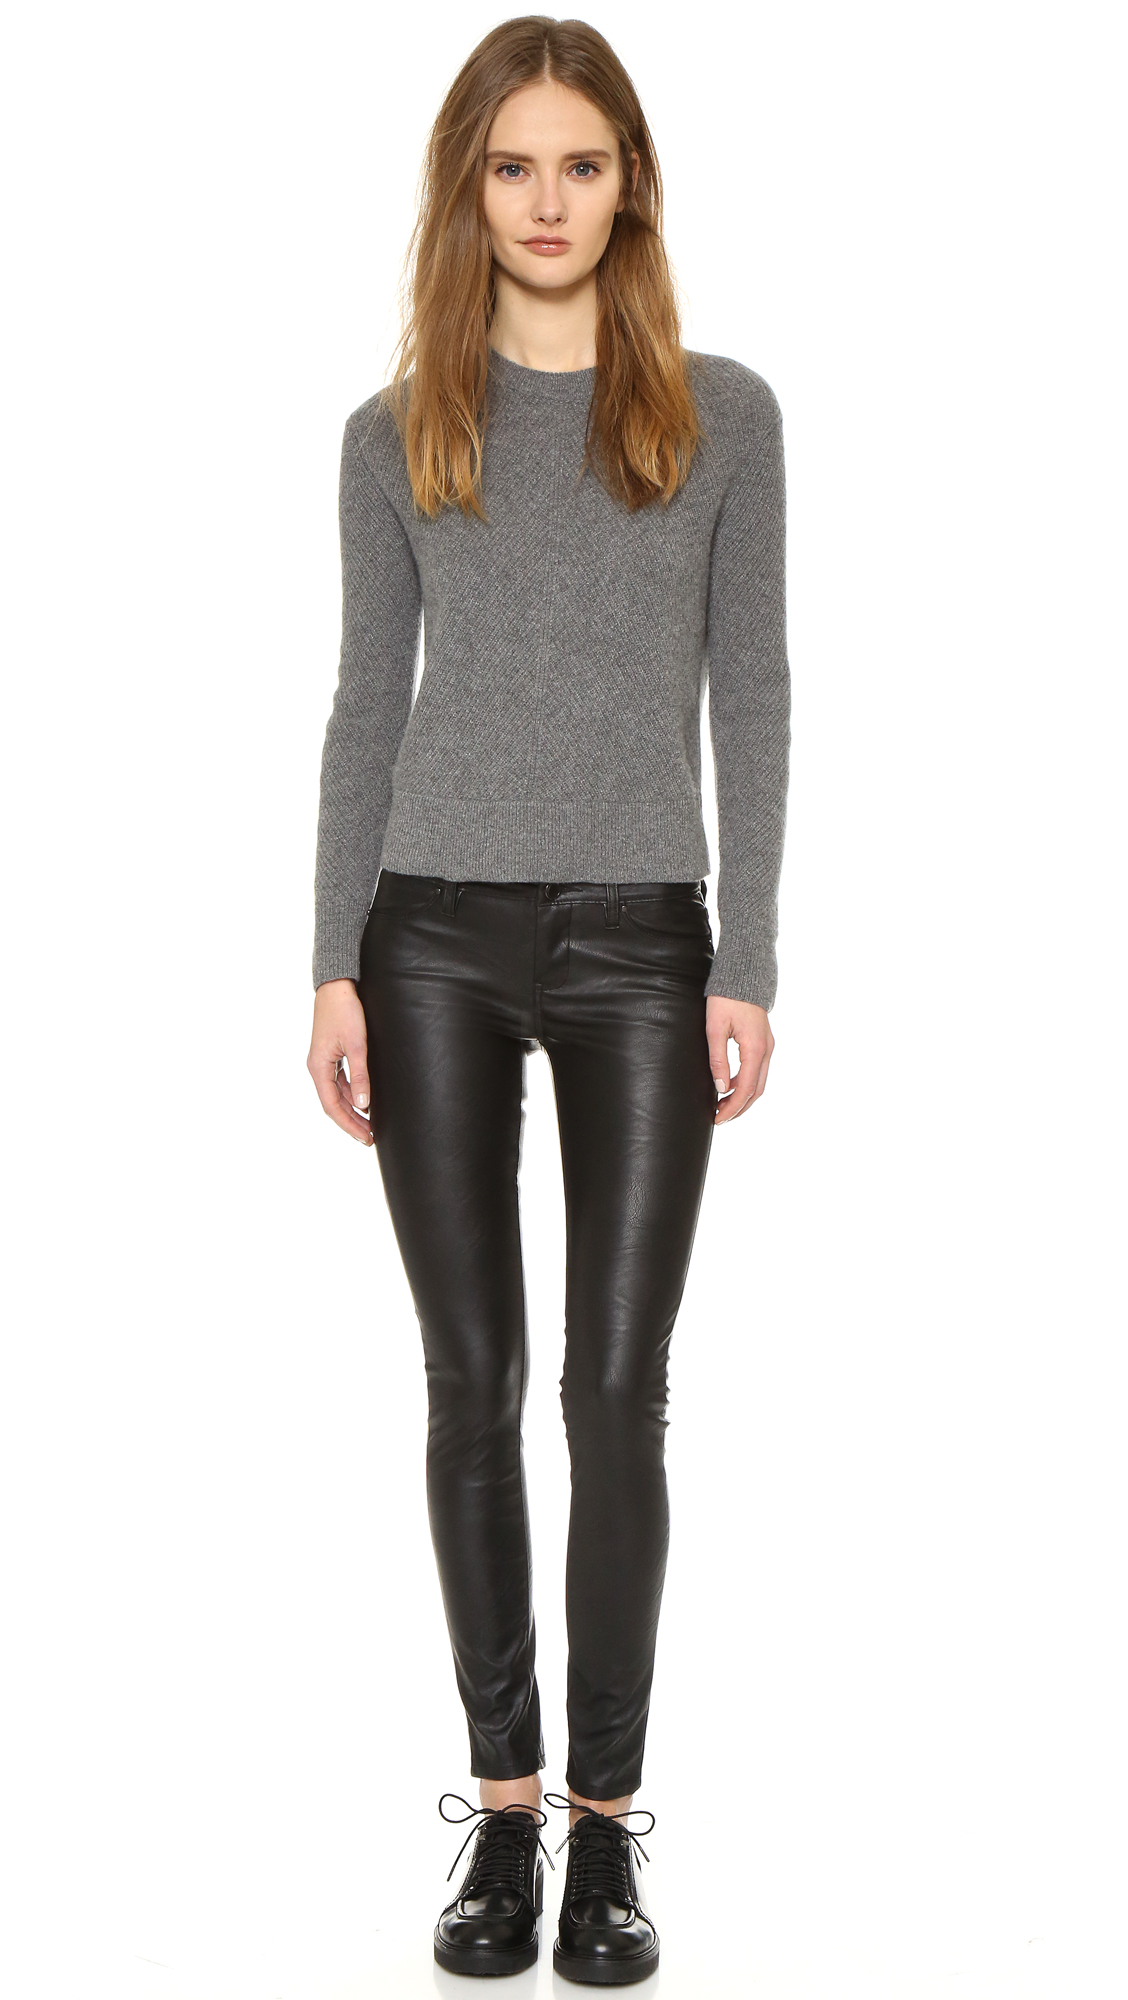 Blank Denim Vegan Leather Skinny Pants  SHOPBOP